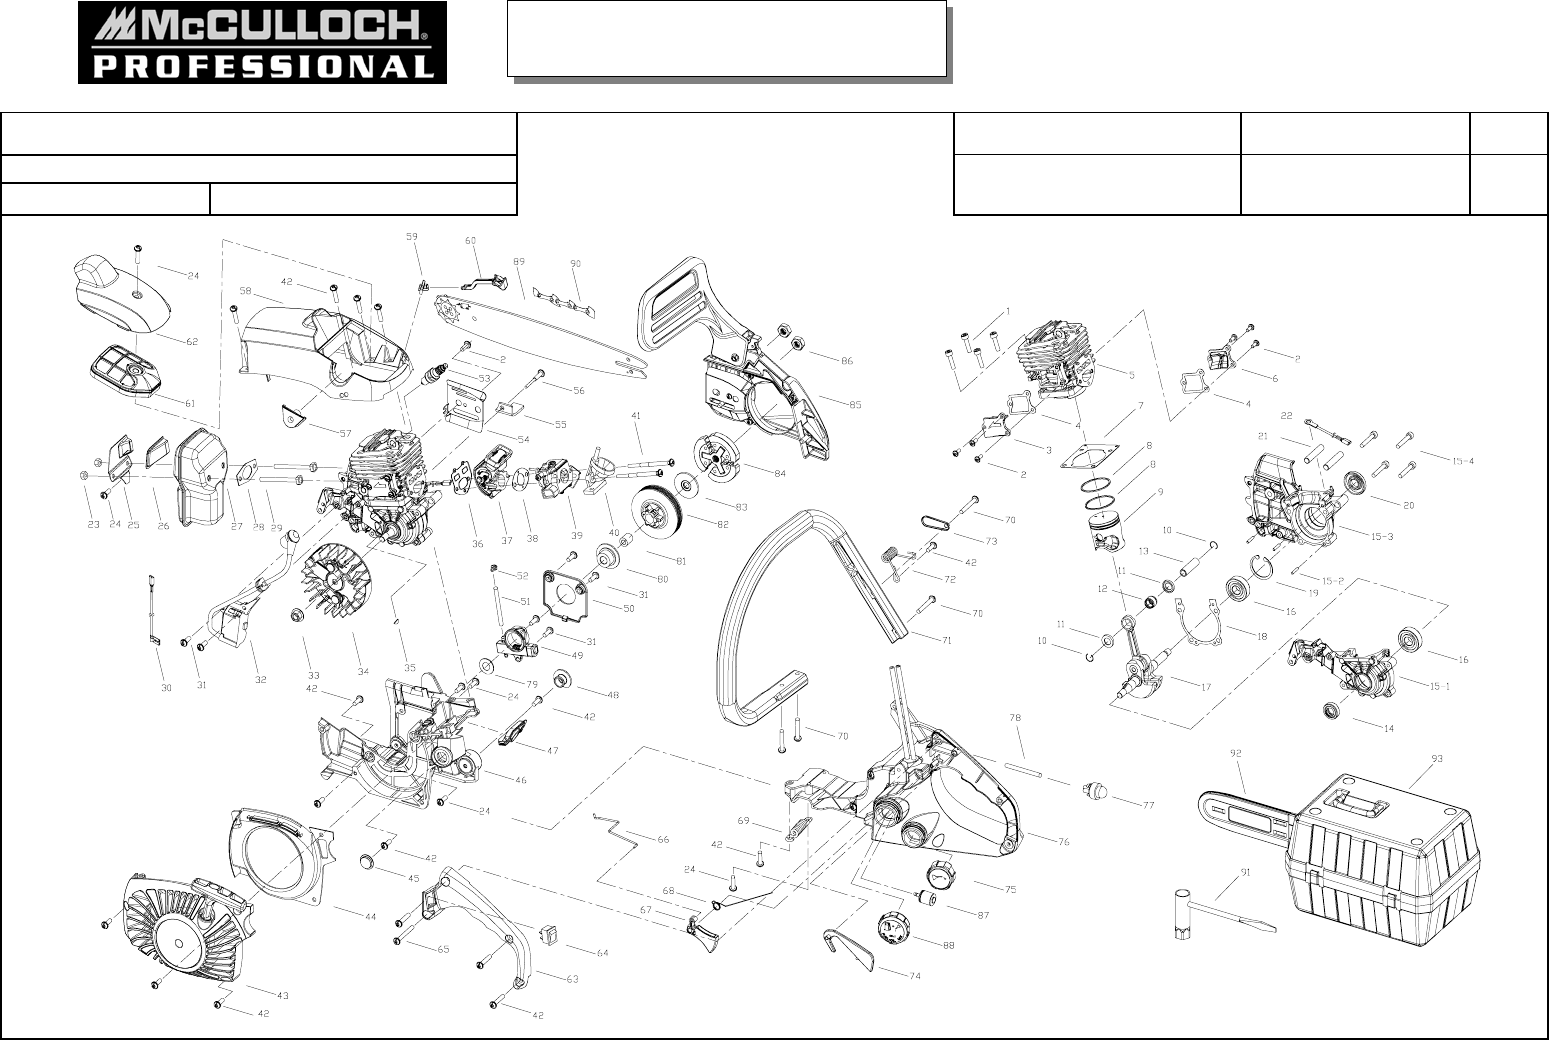 Mcculloch chainsaw 41ay06pr966 user guide manualsonline mcculloch 41ay06pr966 chainsaw user manual greentooth Choice Image